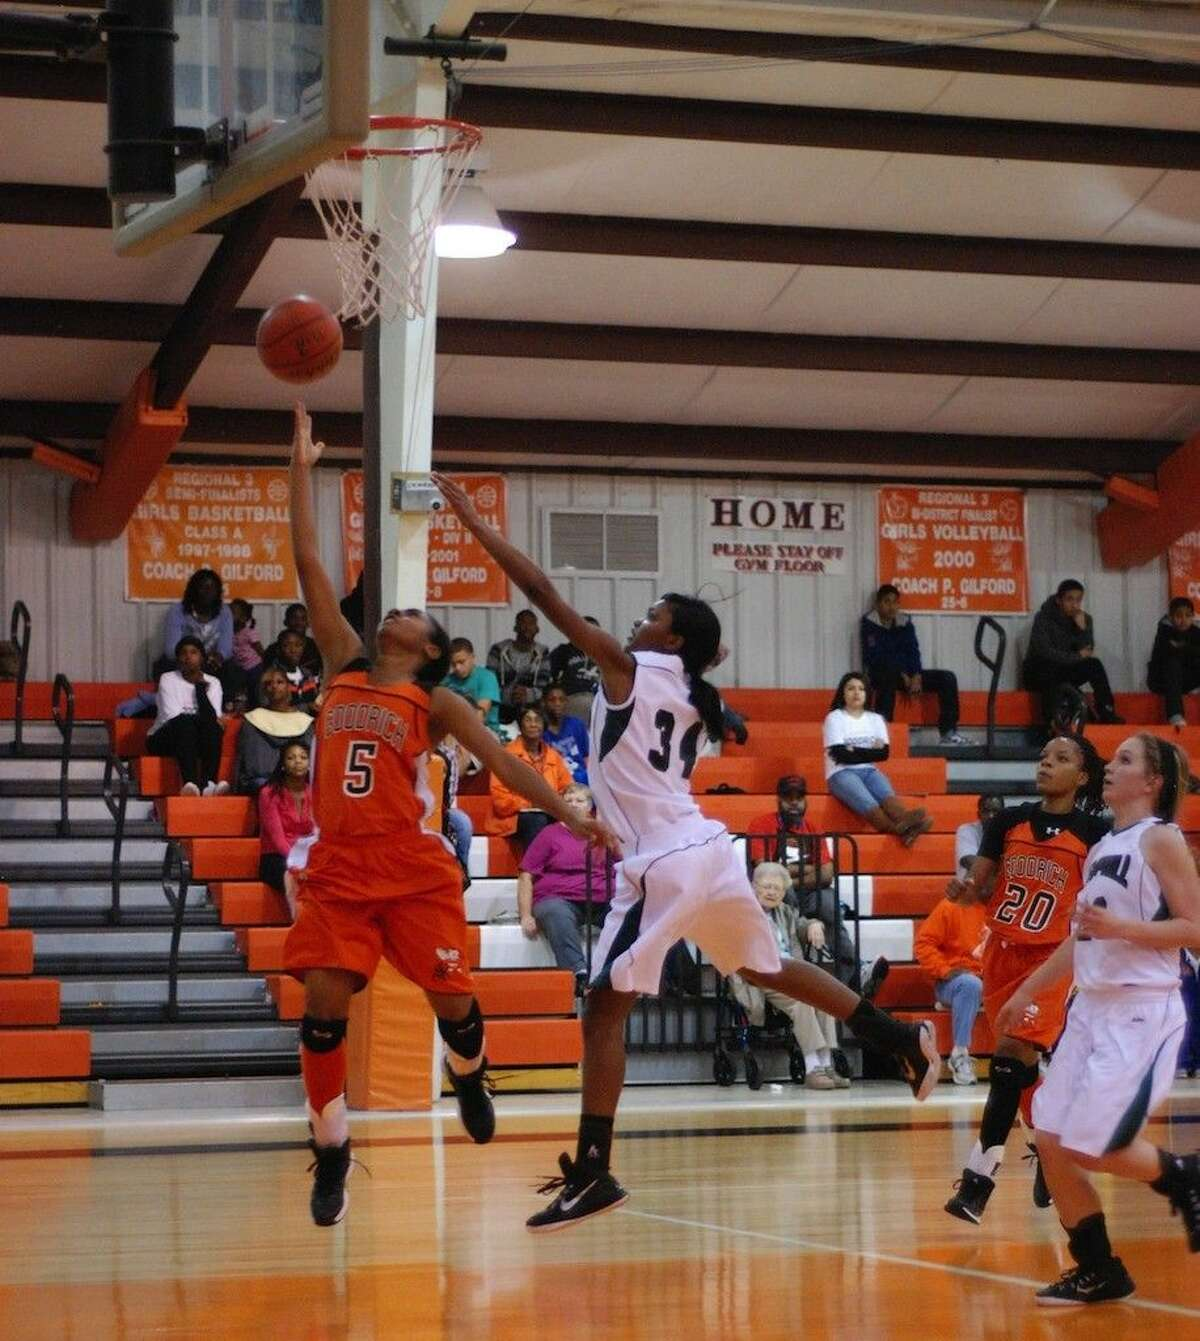 Goodrich junior Kristian James makes a layup on a breakaway drive during the Lady Hornets win over Hemphill's Lady Hornets to take third place in the Goodrich Basketball Tournament, Dec. 6, 2014.